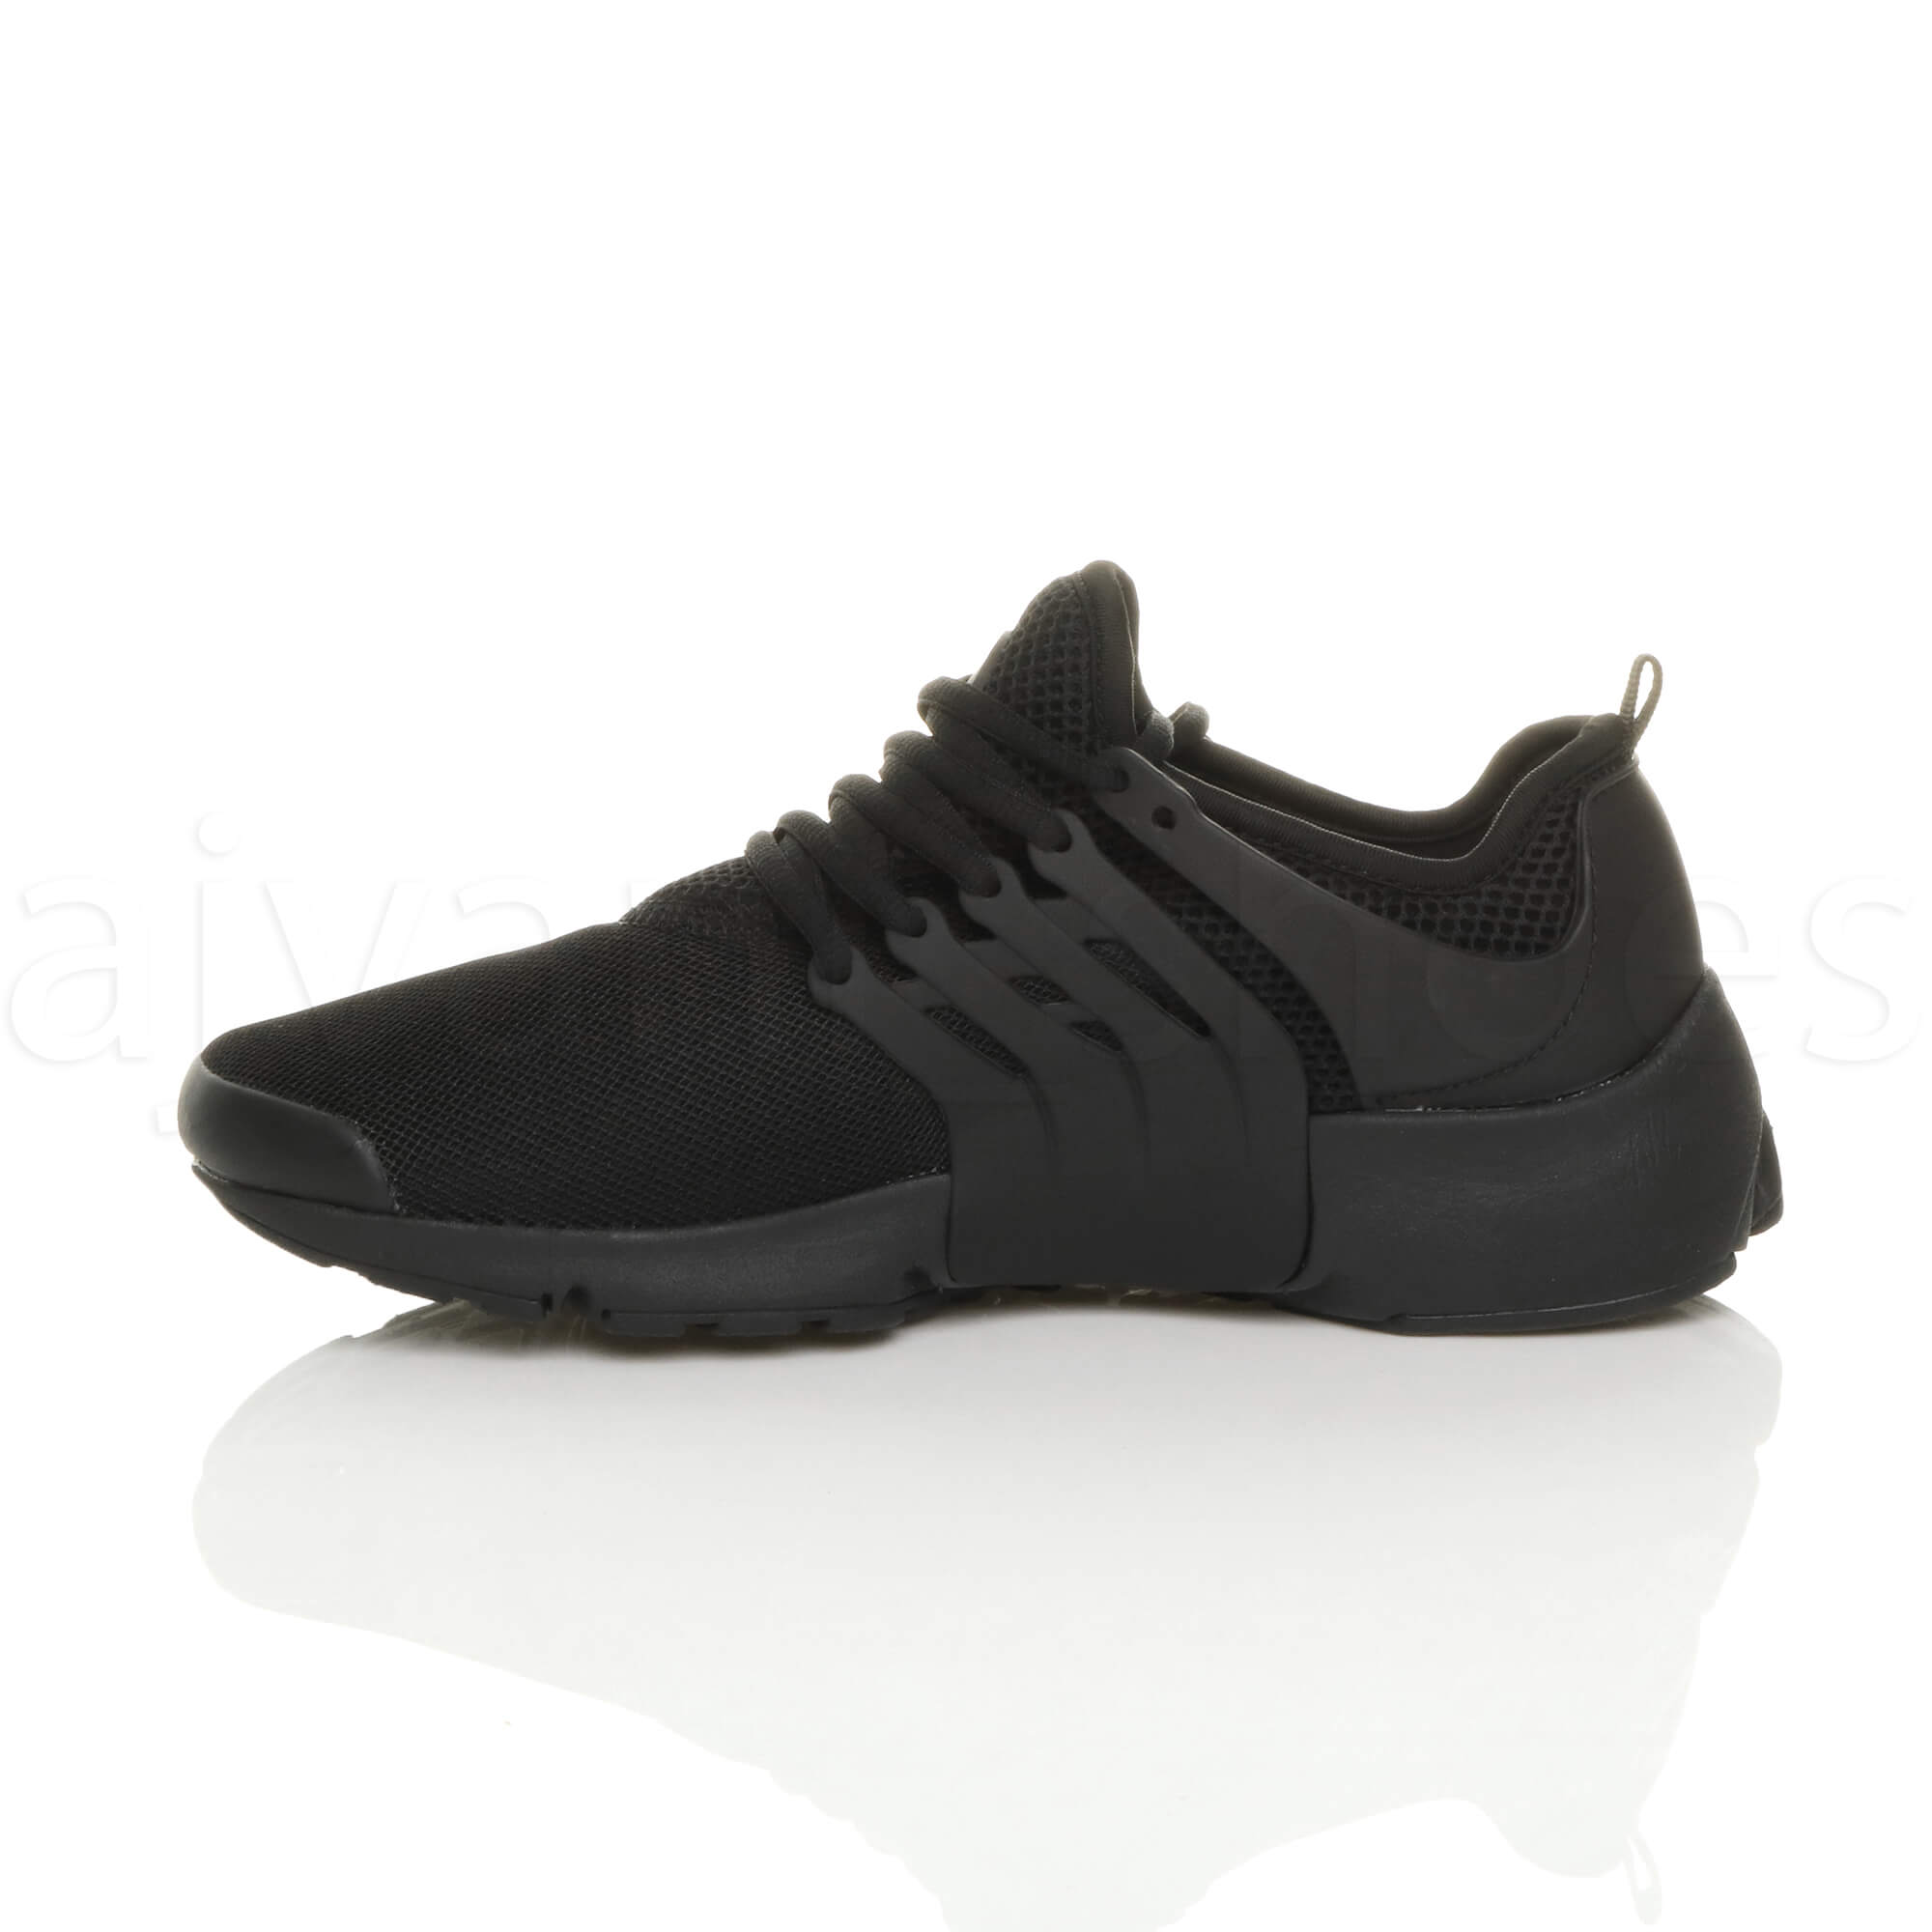 MENS-LACE-UP-SPORTS-GYM-FITNESS-RUNNING-FLEXIBLE-TRAINERS-CASUAL-SNEAKERS-SIZE thumbnail 4